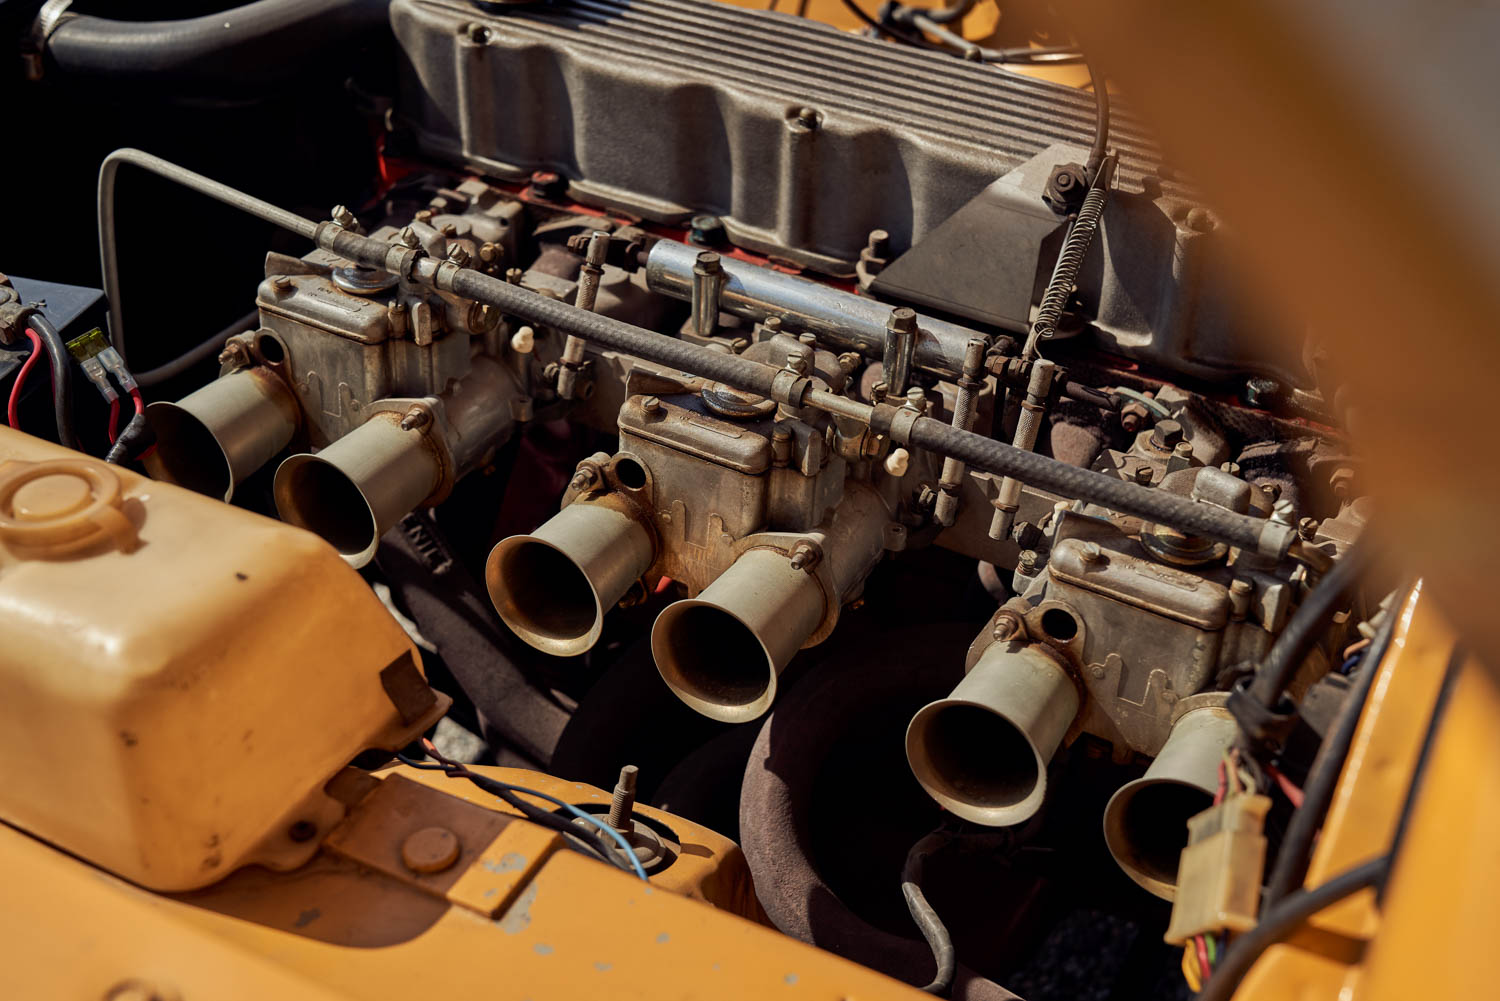 Three Italian-made Weber 45DCOE carburetors give the 265-cubicinch inline-six of the Aussie R/T a Latin snarl. It was a racing setup homologated for the road.